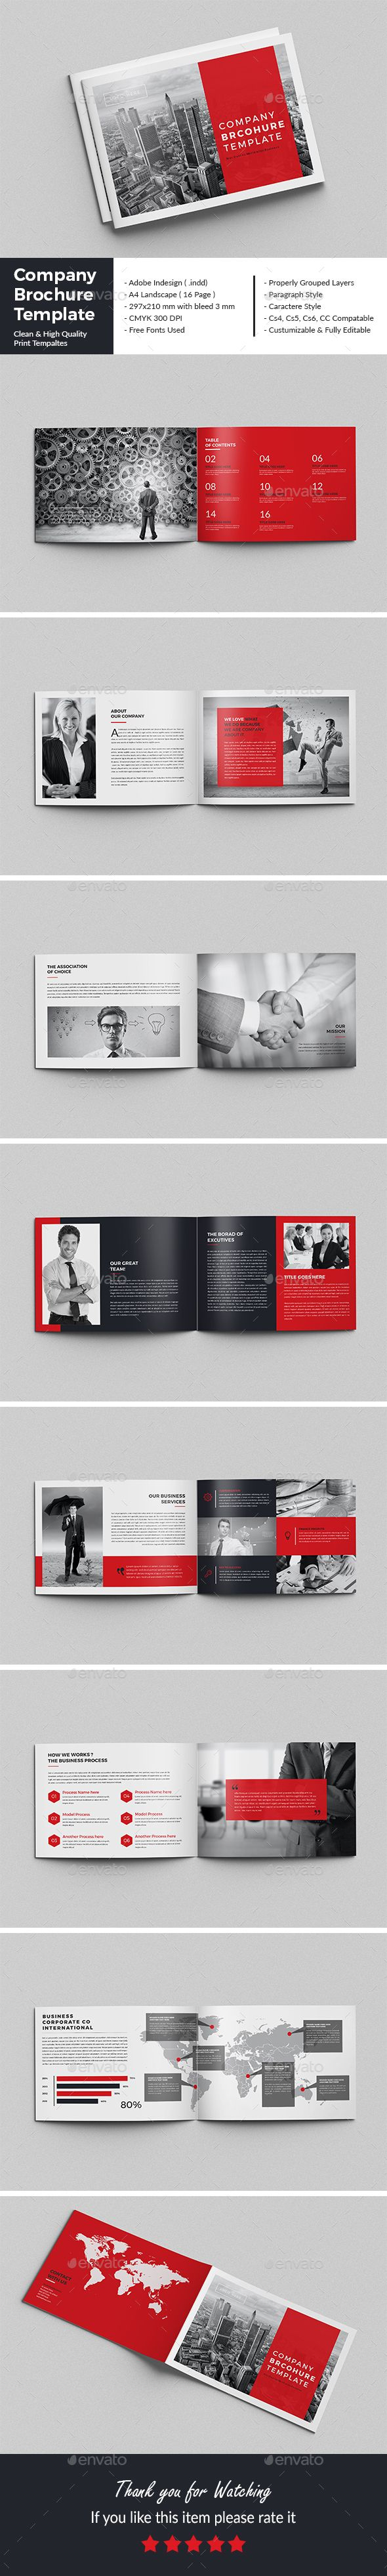 Company Brochure Template InDesign INDD. Download here: http://graphicriver.net/item/company-brochure-template/16024659?ref=ksioks